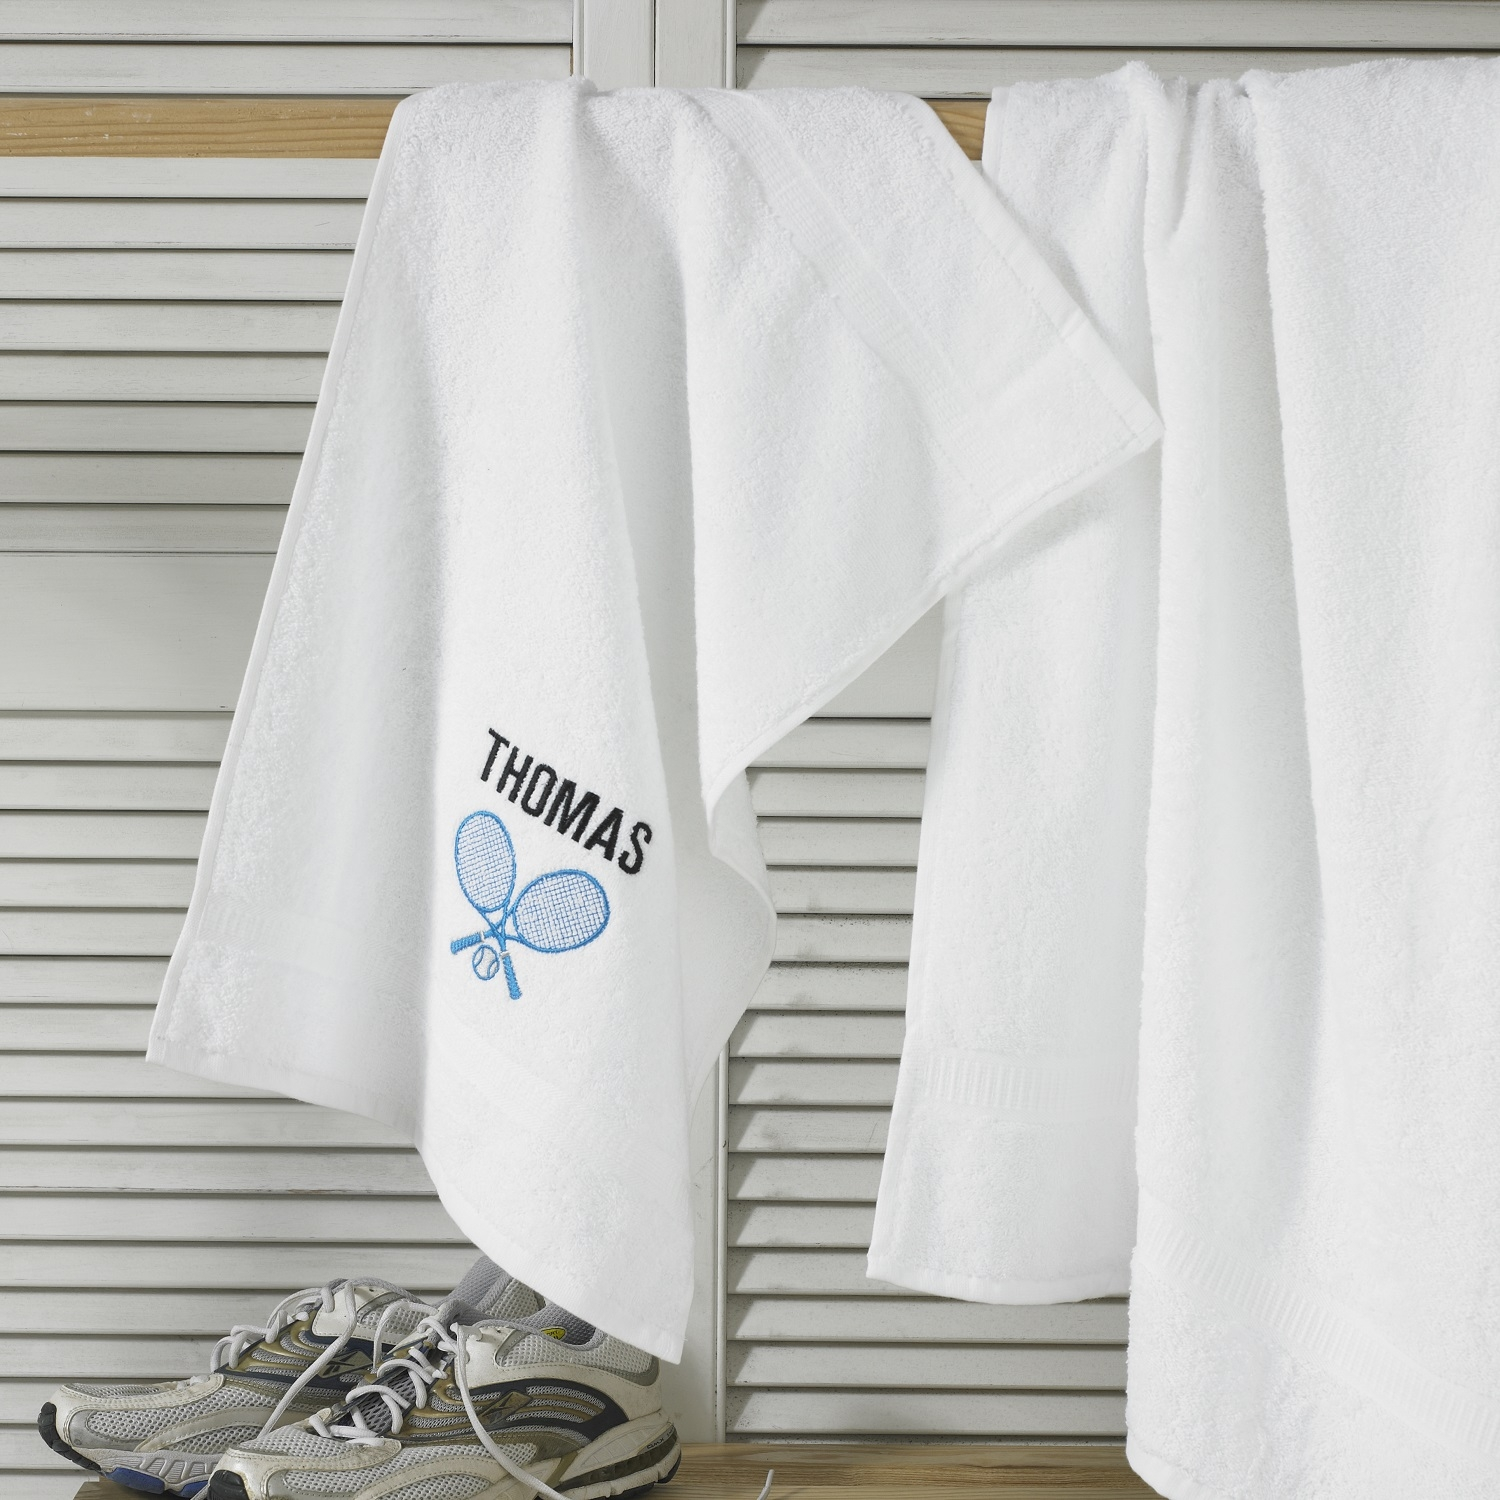 Lords_sports_towel_white.jpg_1500.jpg